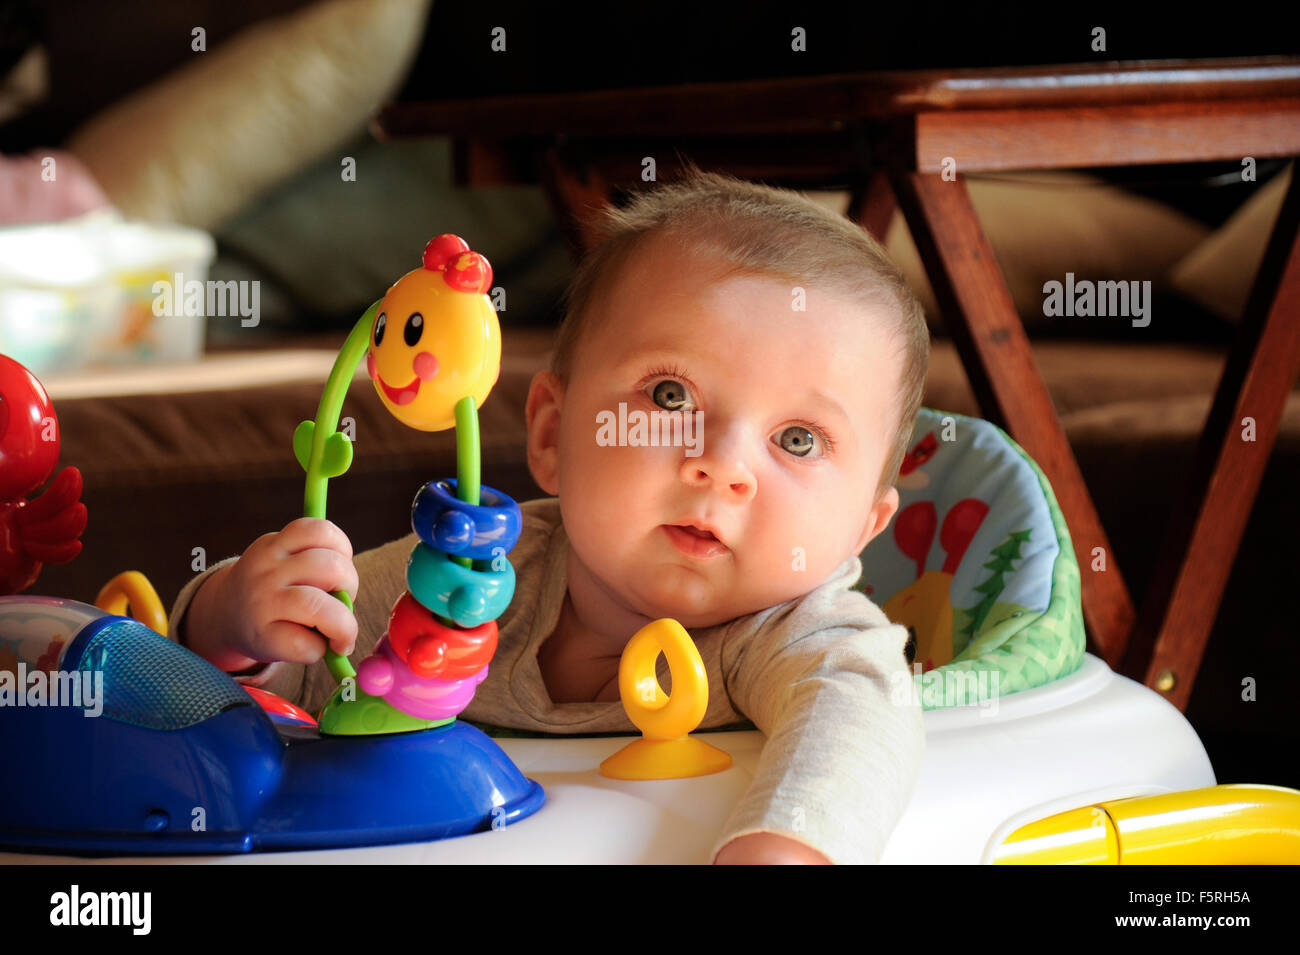 6 Month Old Baby Girl In Seat With Toys Stock Photo 89643494 Alamy